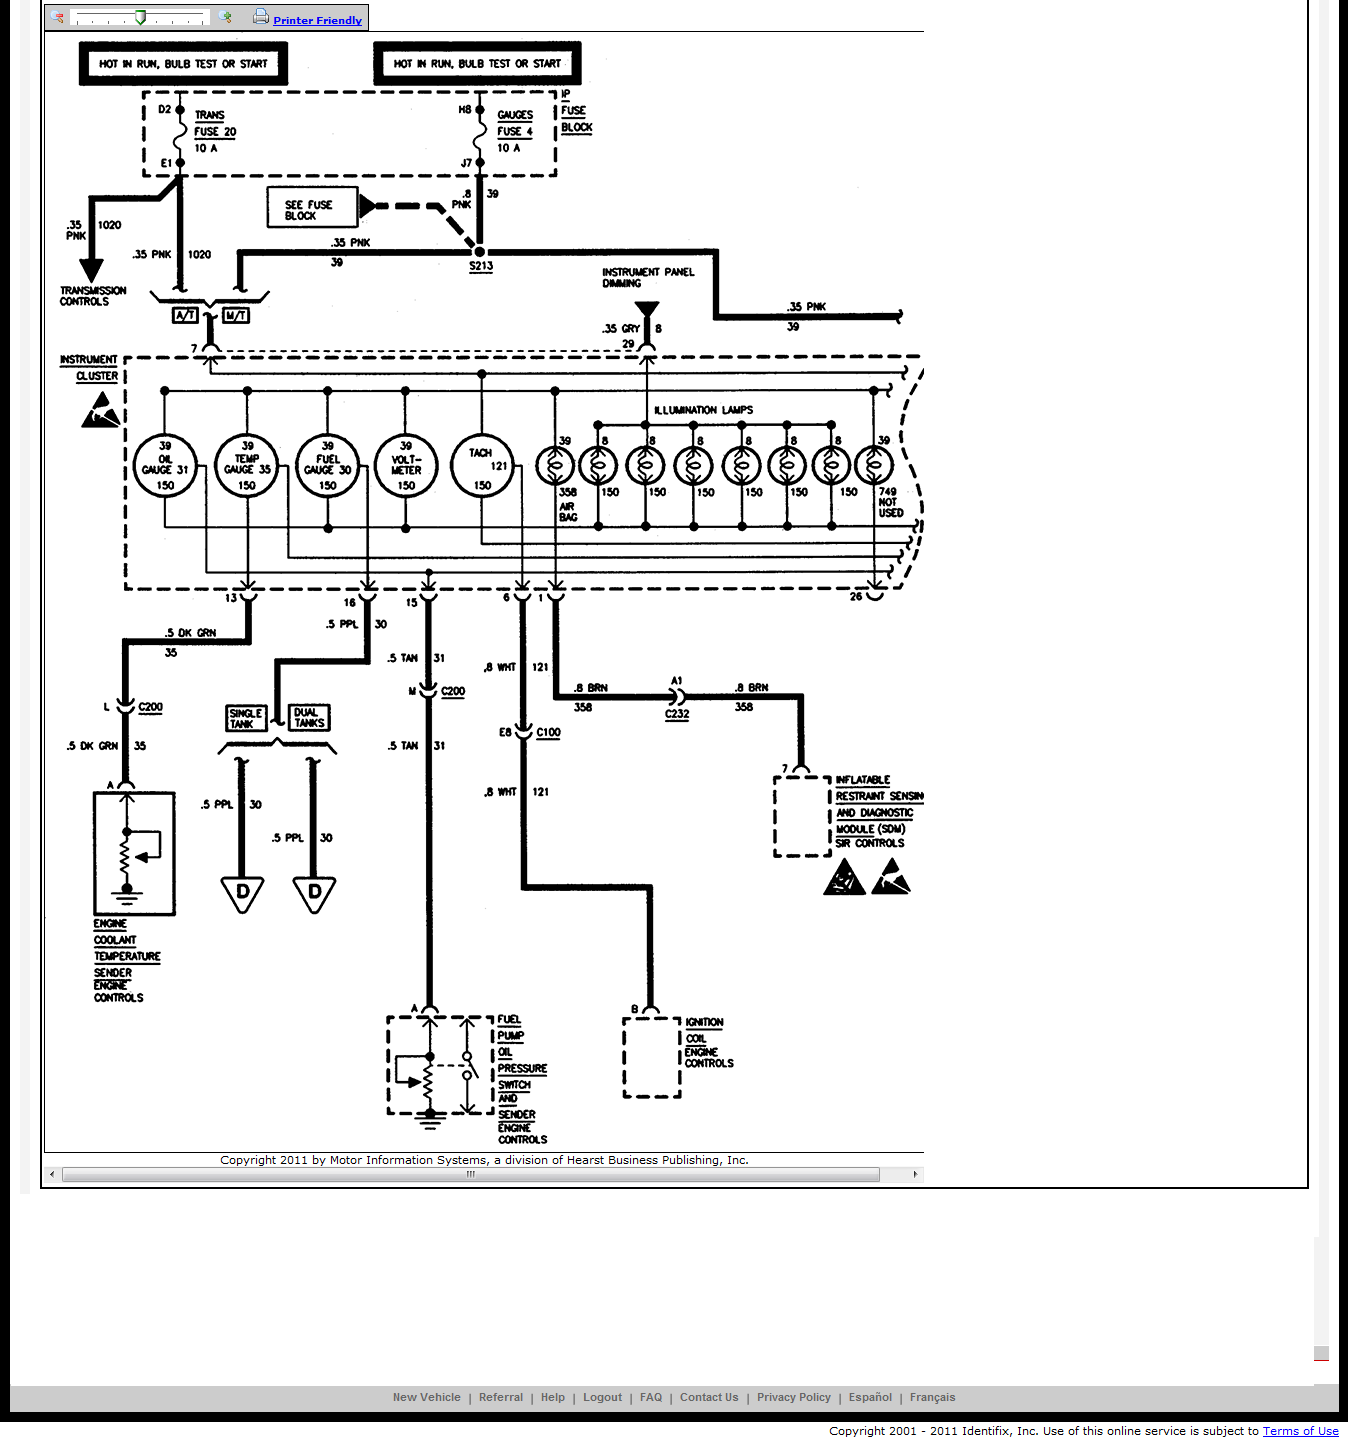 Diagram 2004 Chevy Silverado Fuel System Wiring Diagram Full Version Hd Quality Wiring Diagram Seodiagram Biorygen It